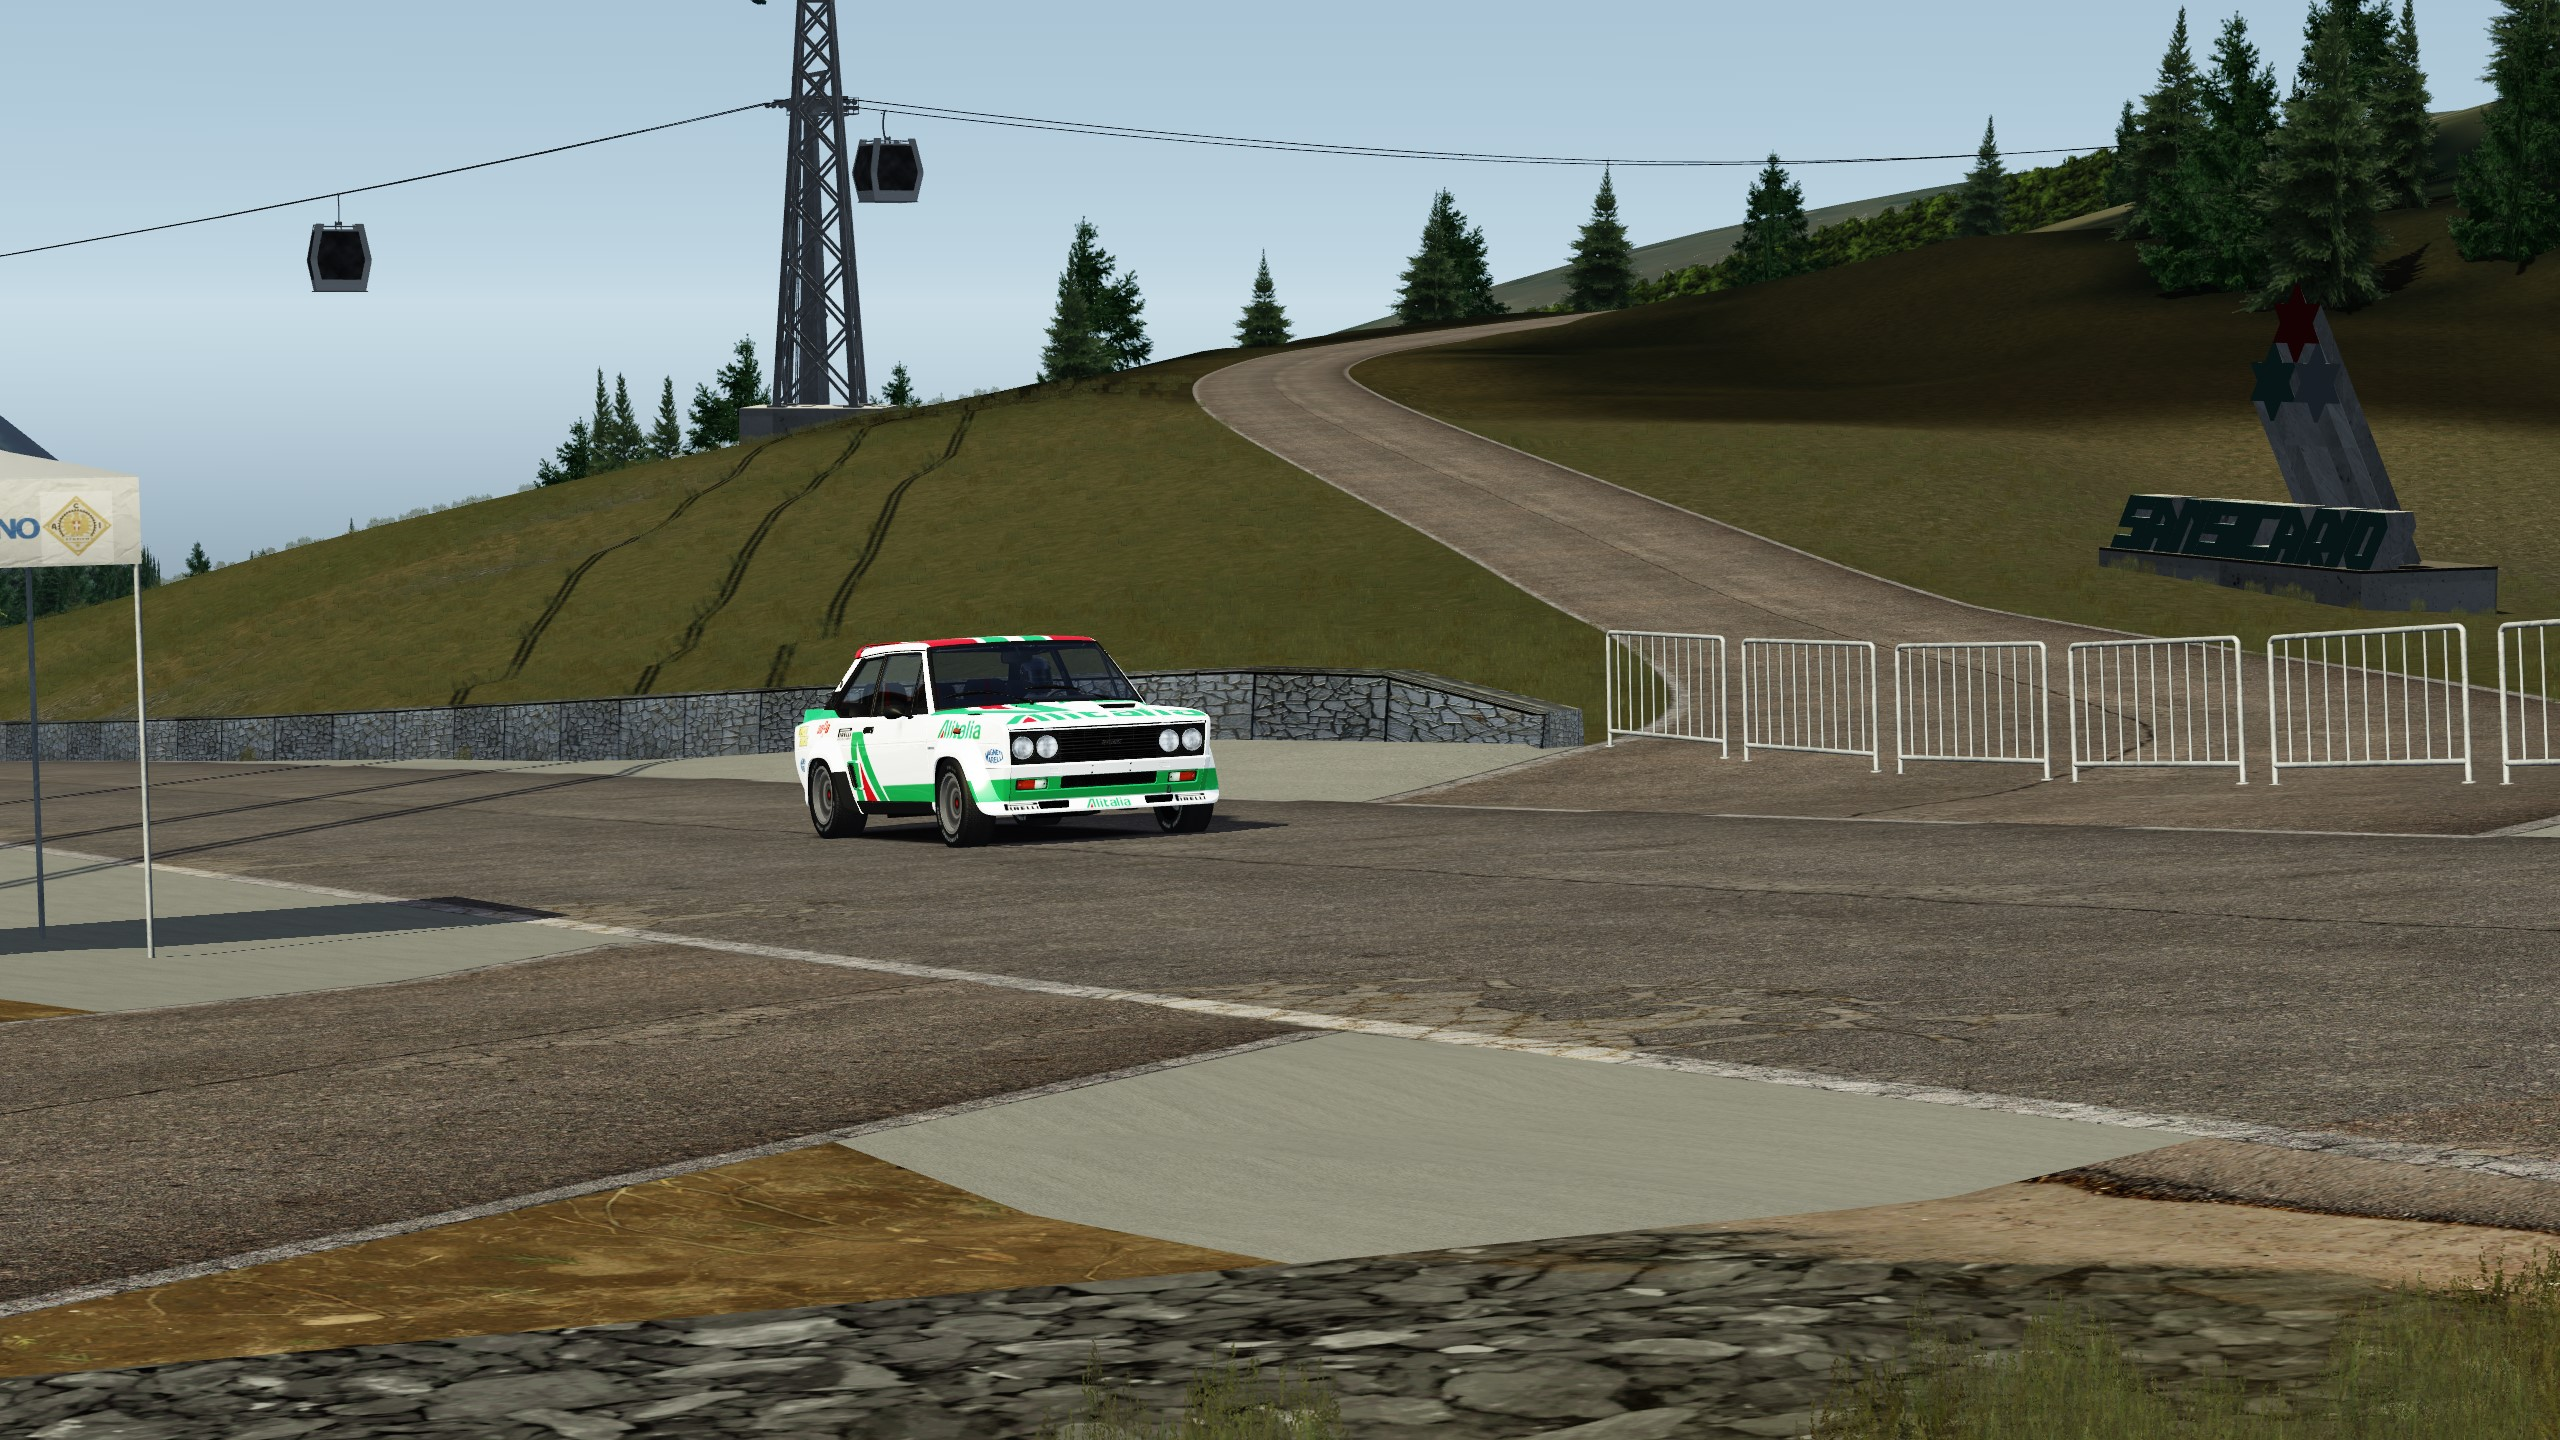 Screenshot_fiat_131_abarth_cesanasestriere_3-11-118-17-33-13.jpg